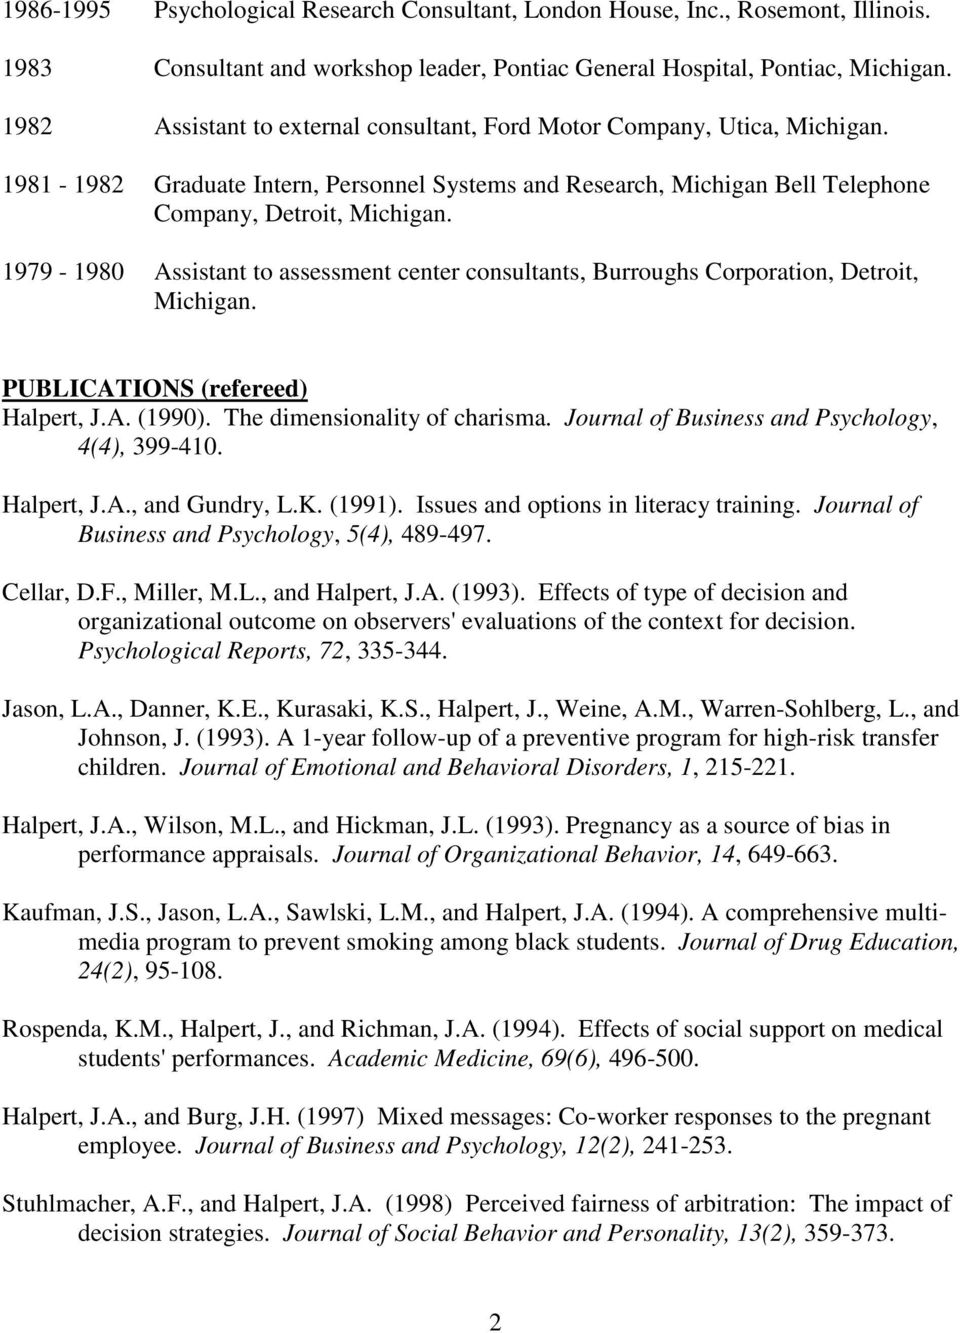 1979-1980 Assistant to assessment center consultants, Burroughs Corporation, Detroit, Michigan. PUBLICATIONS (refereed) Halpert, J.A. (1990). The dimensionality of charisma.